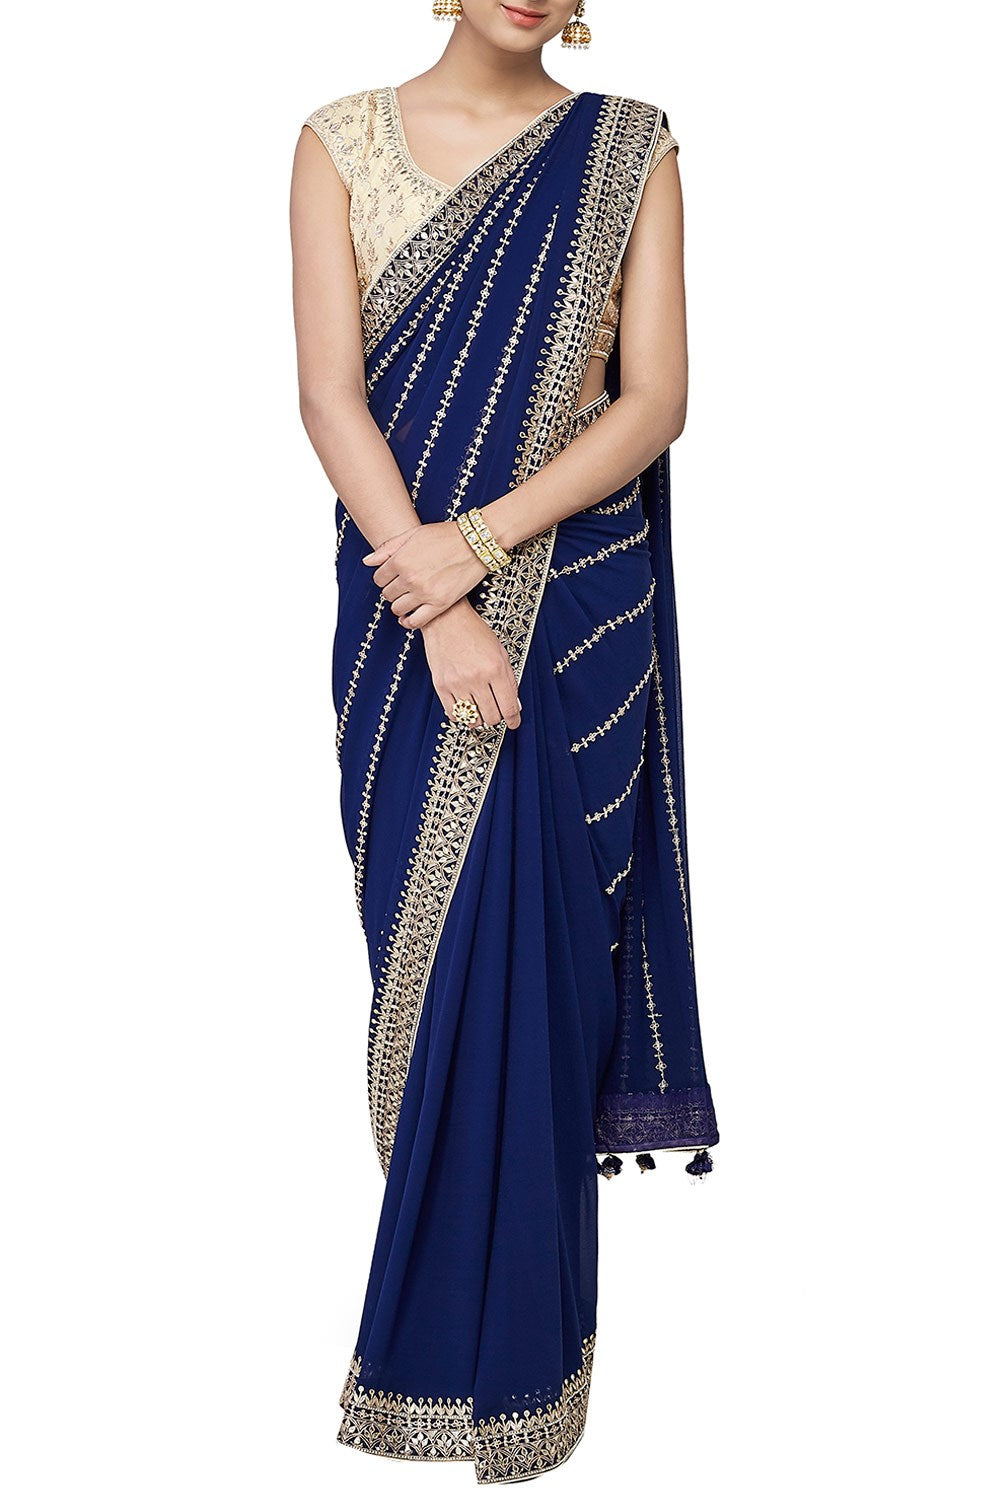 Navy Blue Saree with Gotta Patti and Zari Embroidery